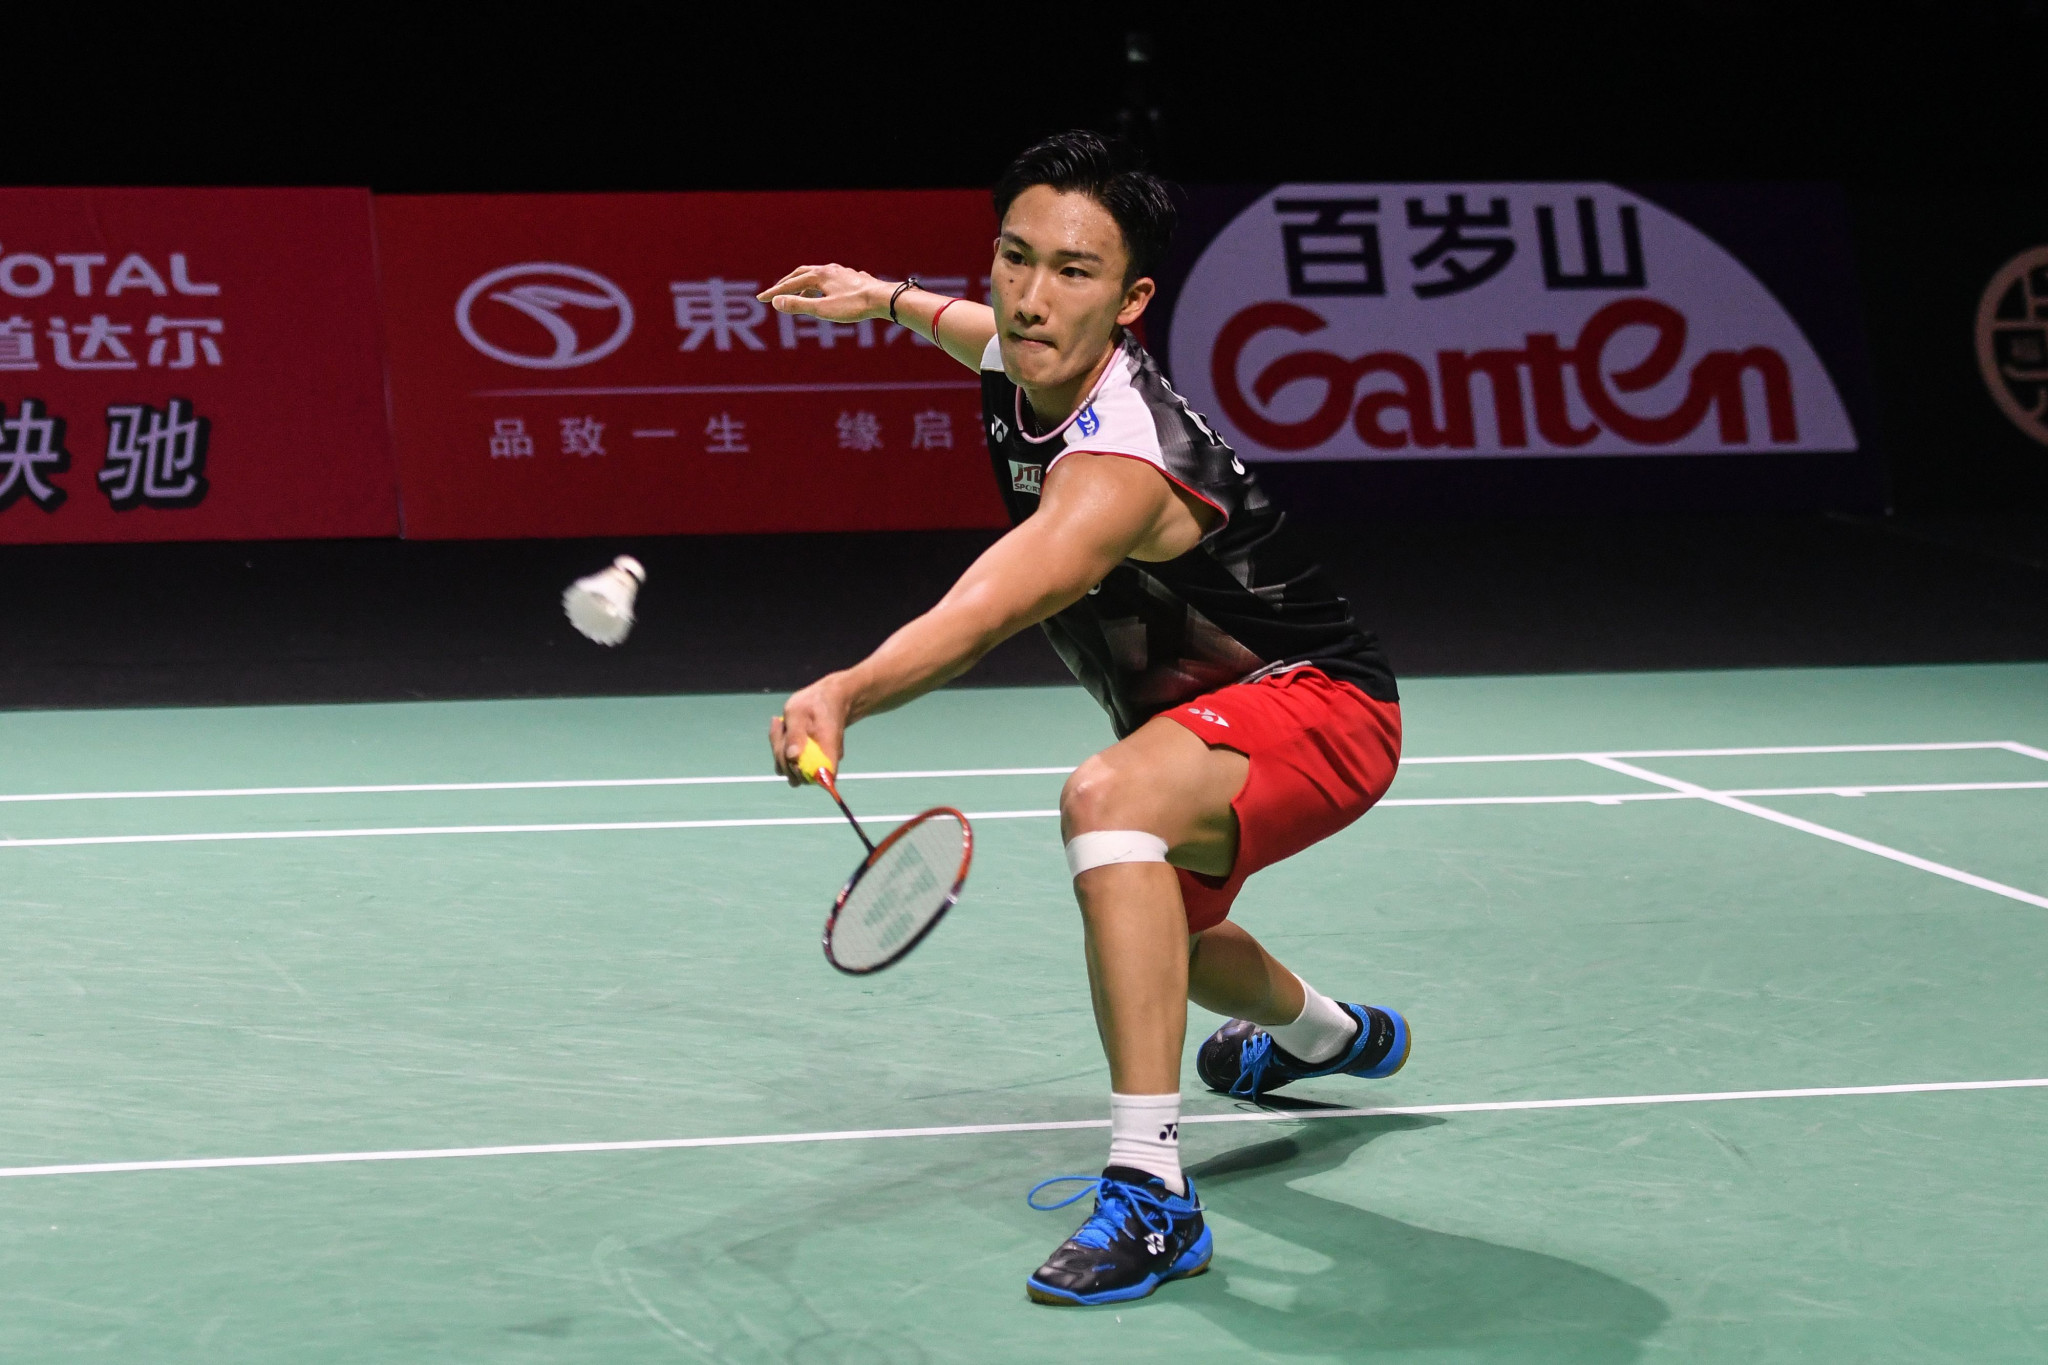 World champion Kento Momota will begin as favourite for the men's singles title ©Getty Images